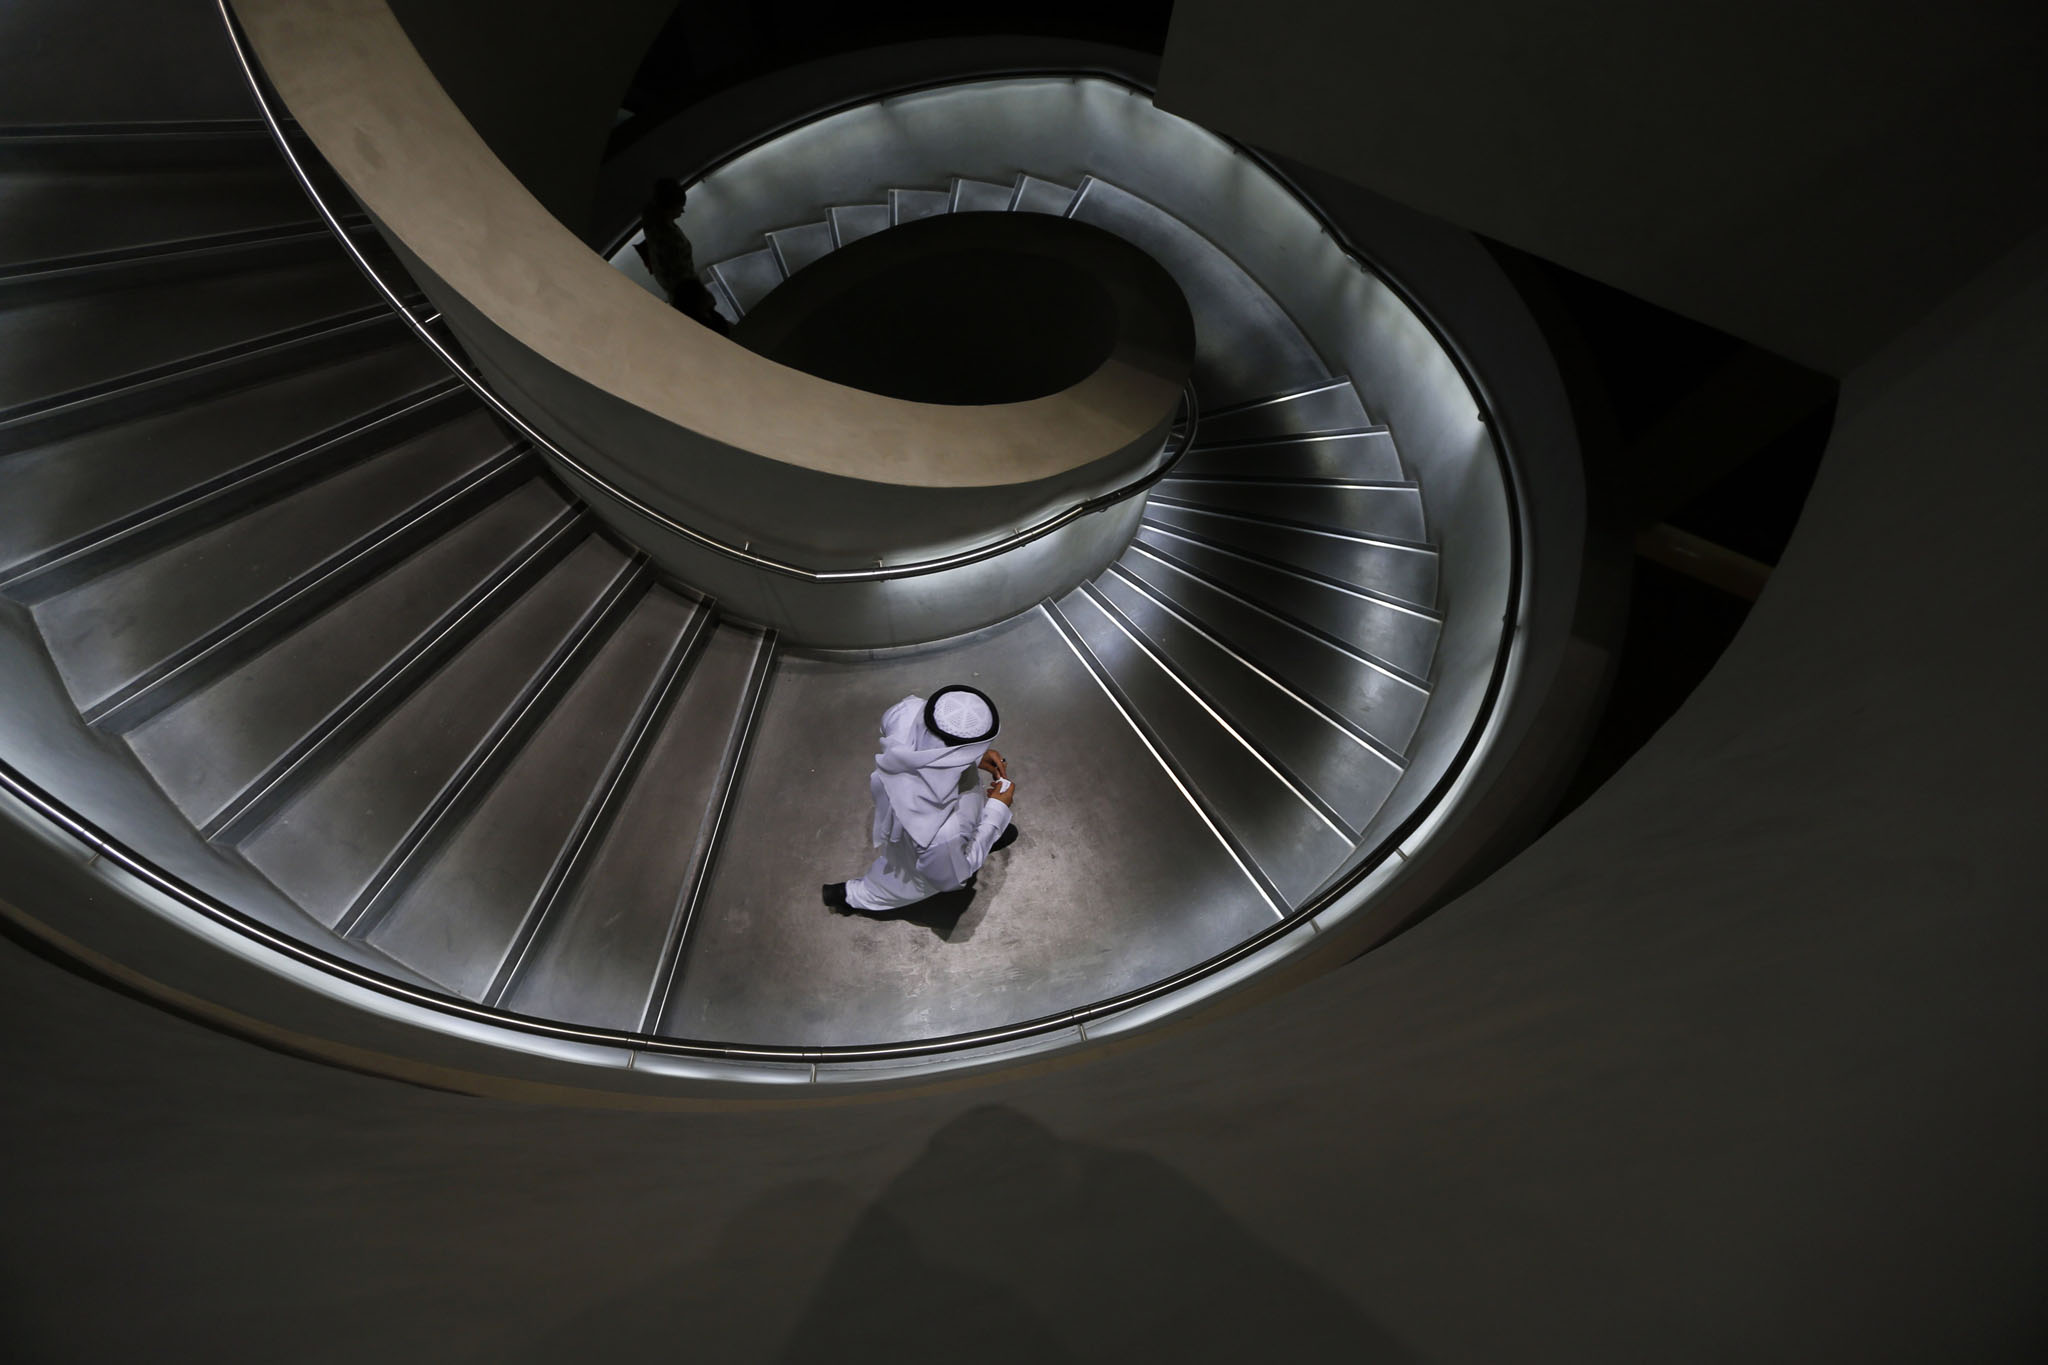 An Emirati man walks down stairs in Masdar City